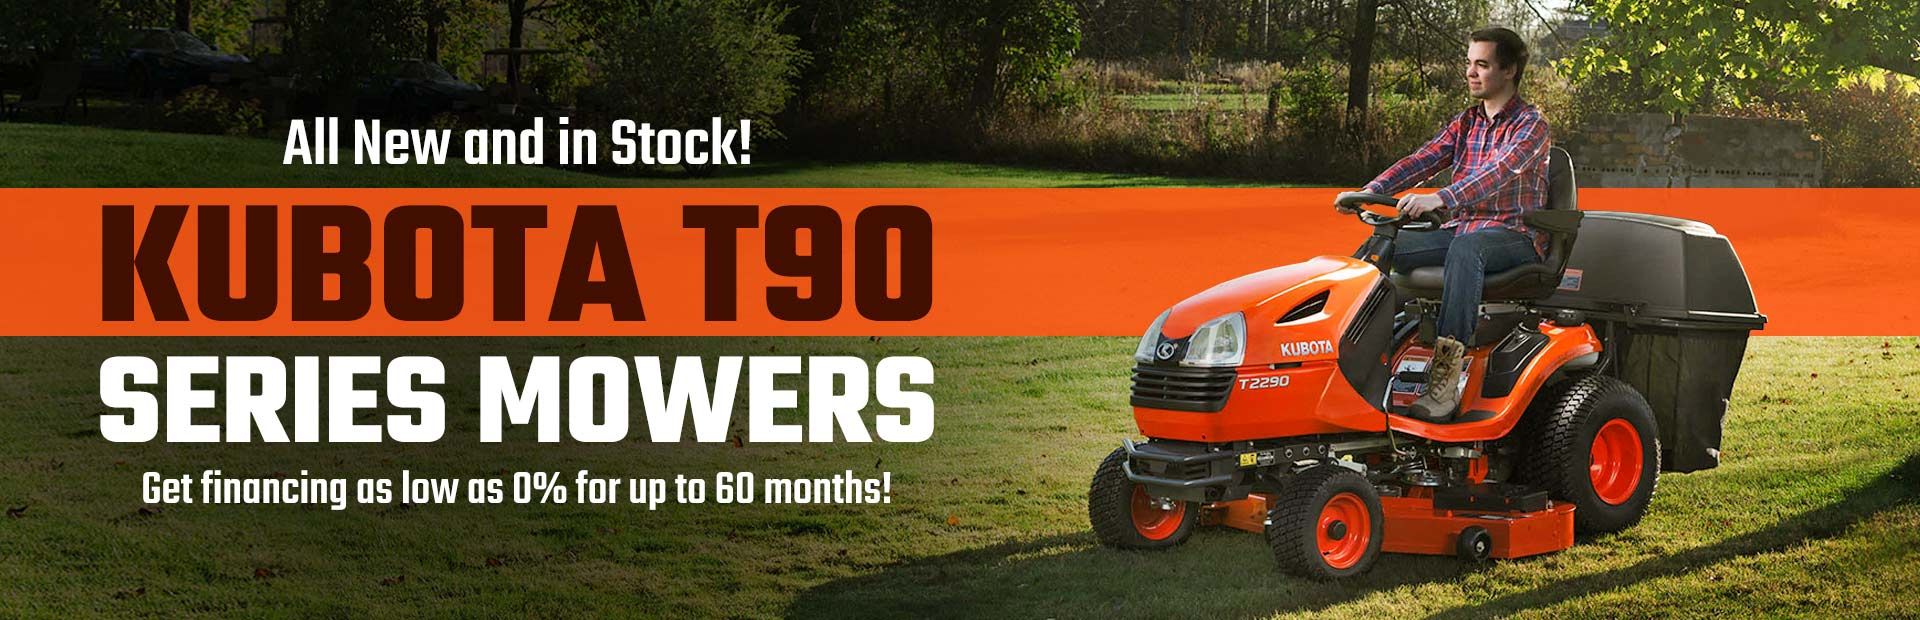 Kubota T90 Series Mowers: Click here to view the lineup.